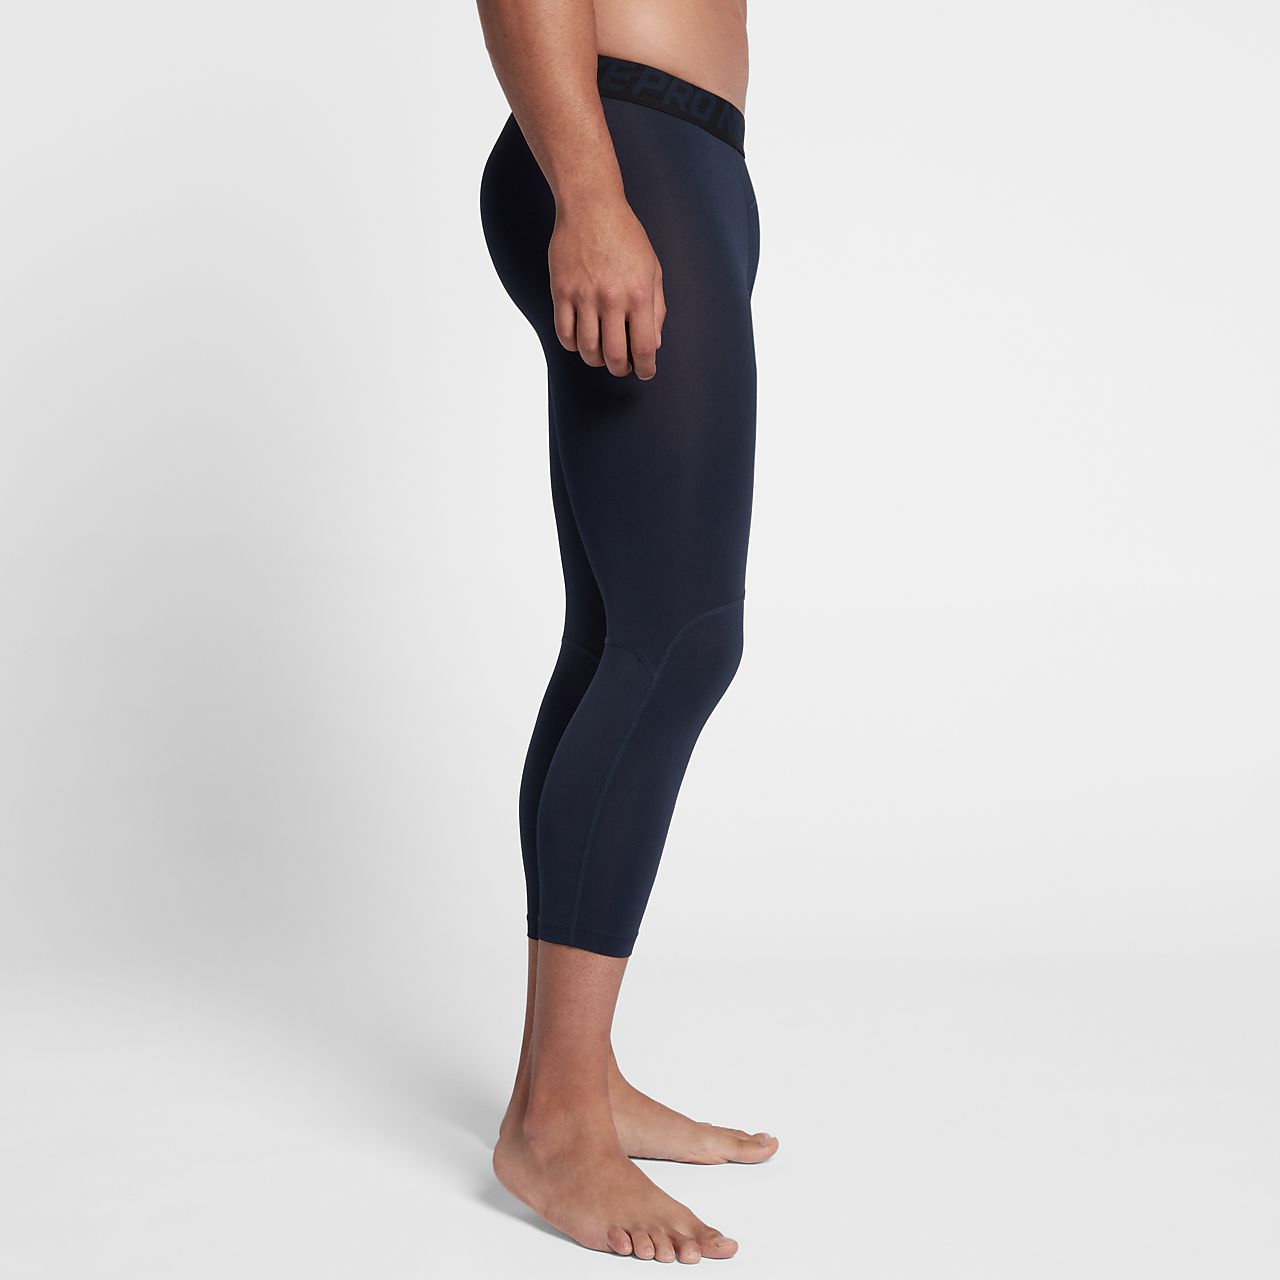 88546306bbb34 Nike Pro Men s 3 4 Training Tights. Nike.com